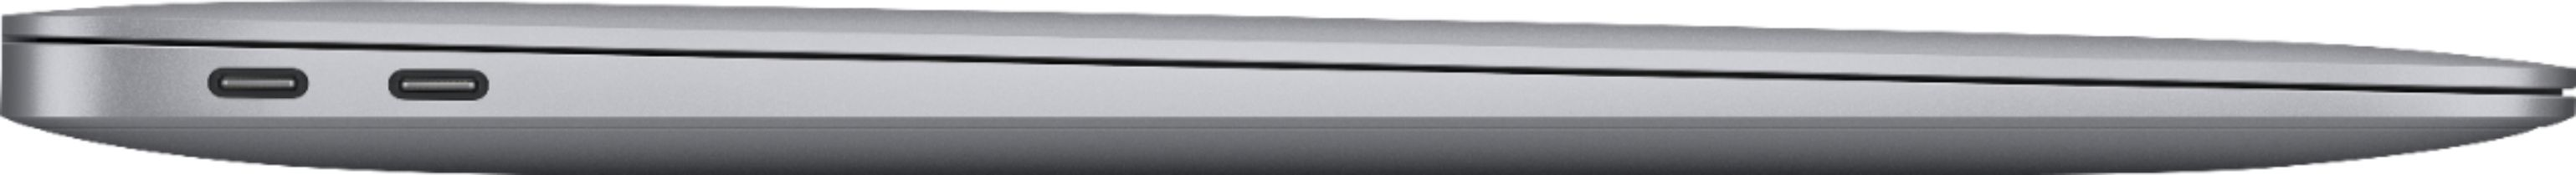 """Alt View Zoom 14. MacBook Air 13.3"""" Laptop - Apple M1 chip - 8GB Memory - 256GB SSD (Latest Model) - Space Gray."""